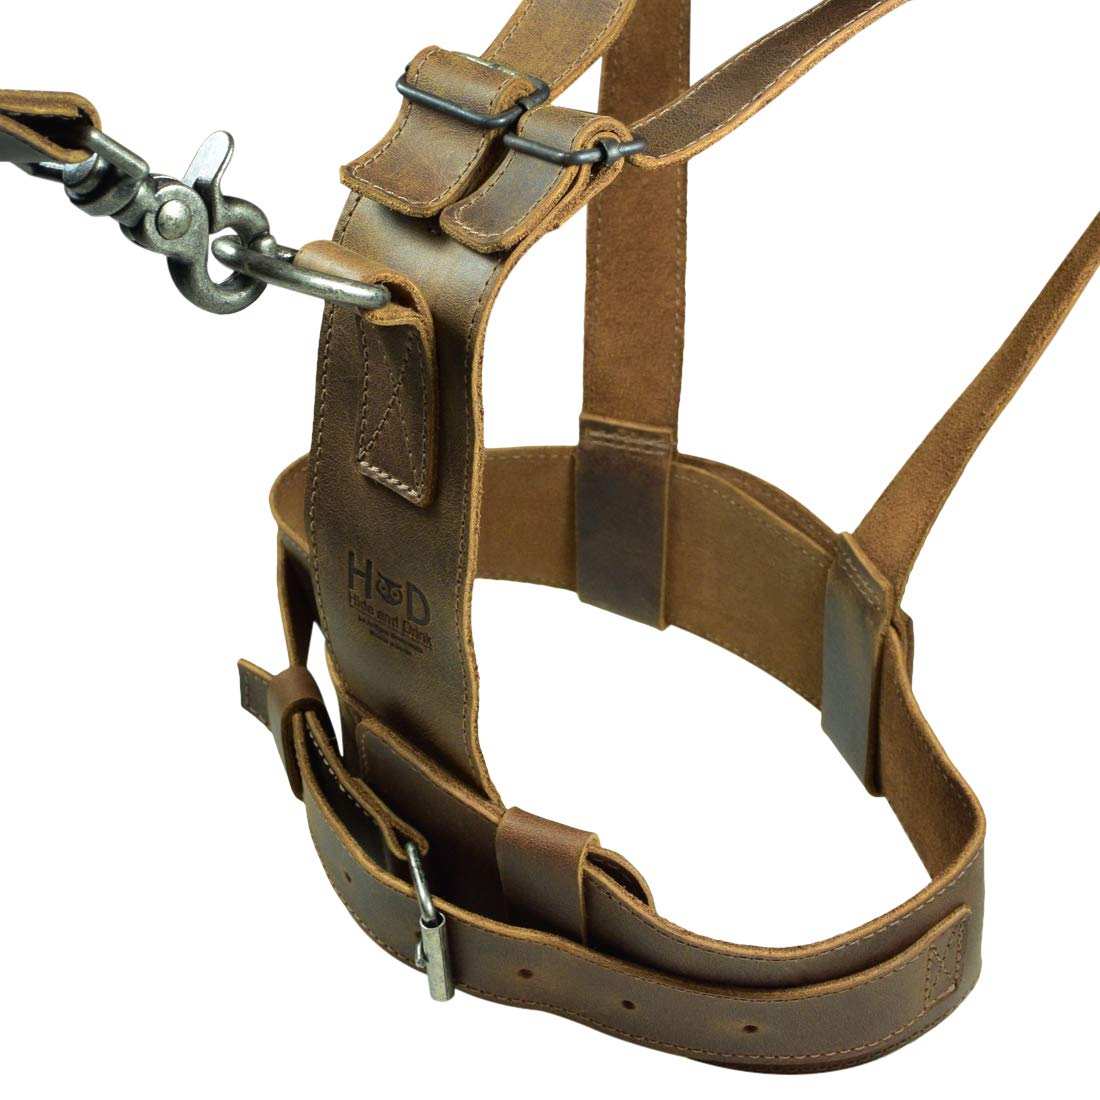 Hide & Drink, Leather Toddler Harness, Chest Size 9-11 in. Anti-Lost Belt, Child Safety, Walking Baby, Handmade Includes 101 Year Warranty :: Bourbon Brown